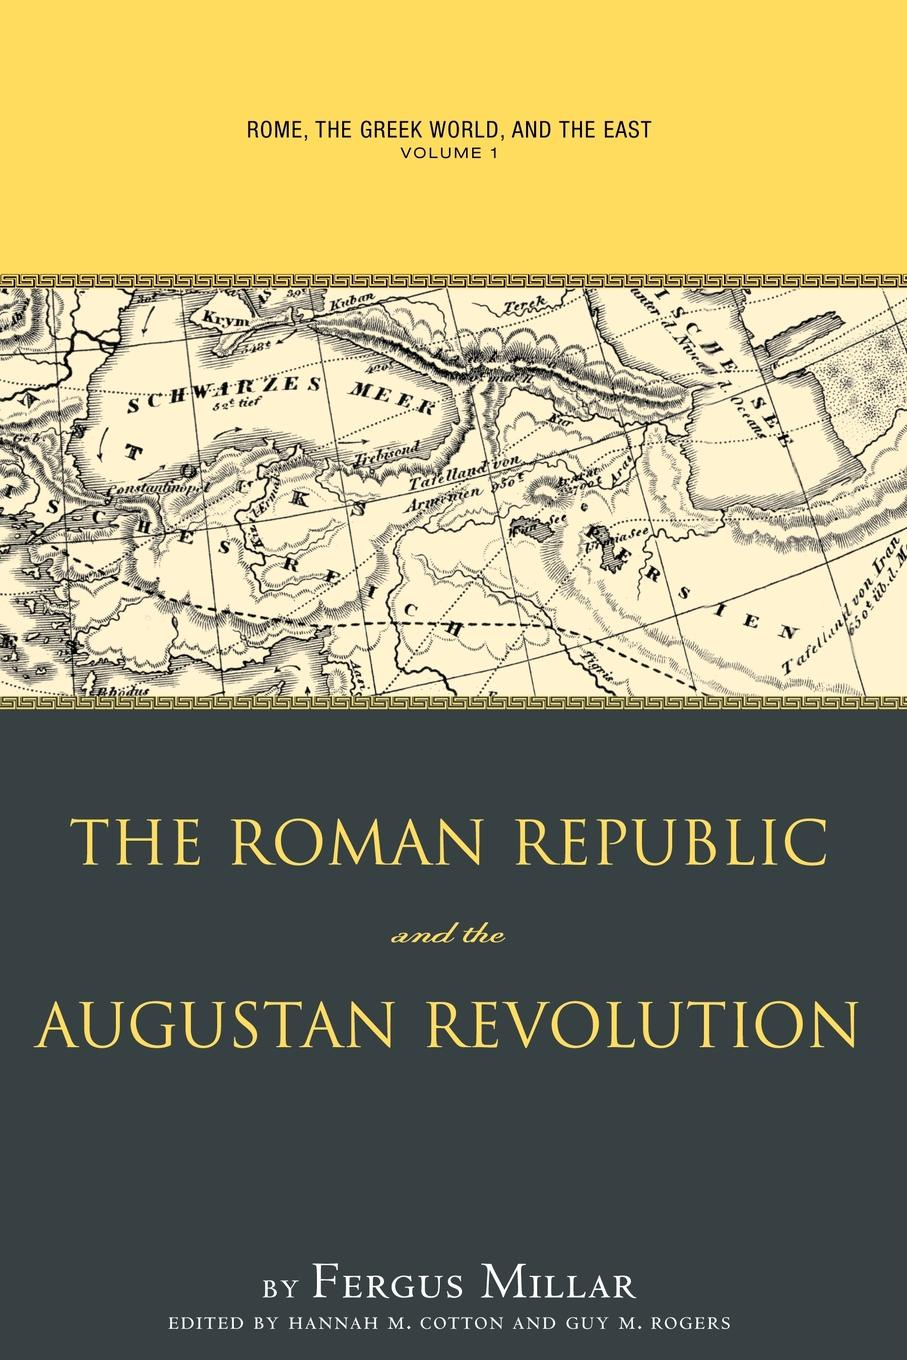 Fergus Millar Rome, the Greek World, and the East, Volume 1. The Roman Republic and the Augustan Revolution dean hammer a companion to greek democracy and the roman republic